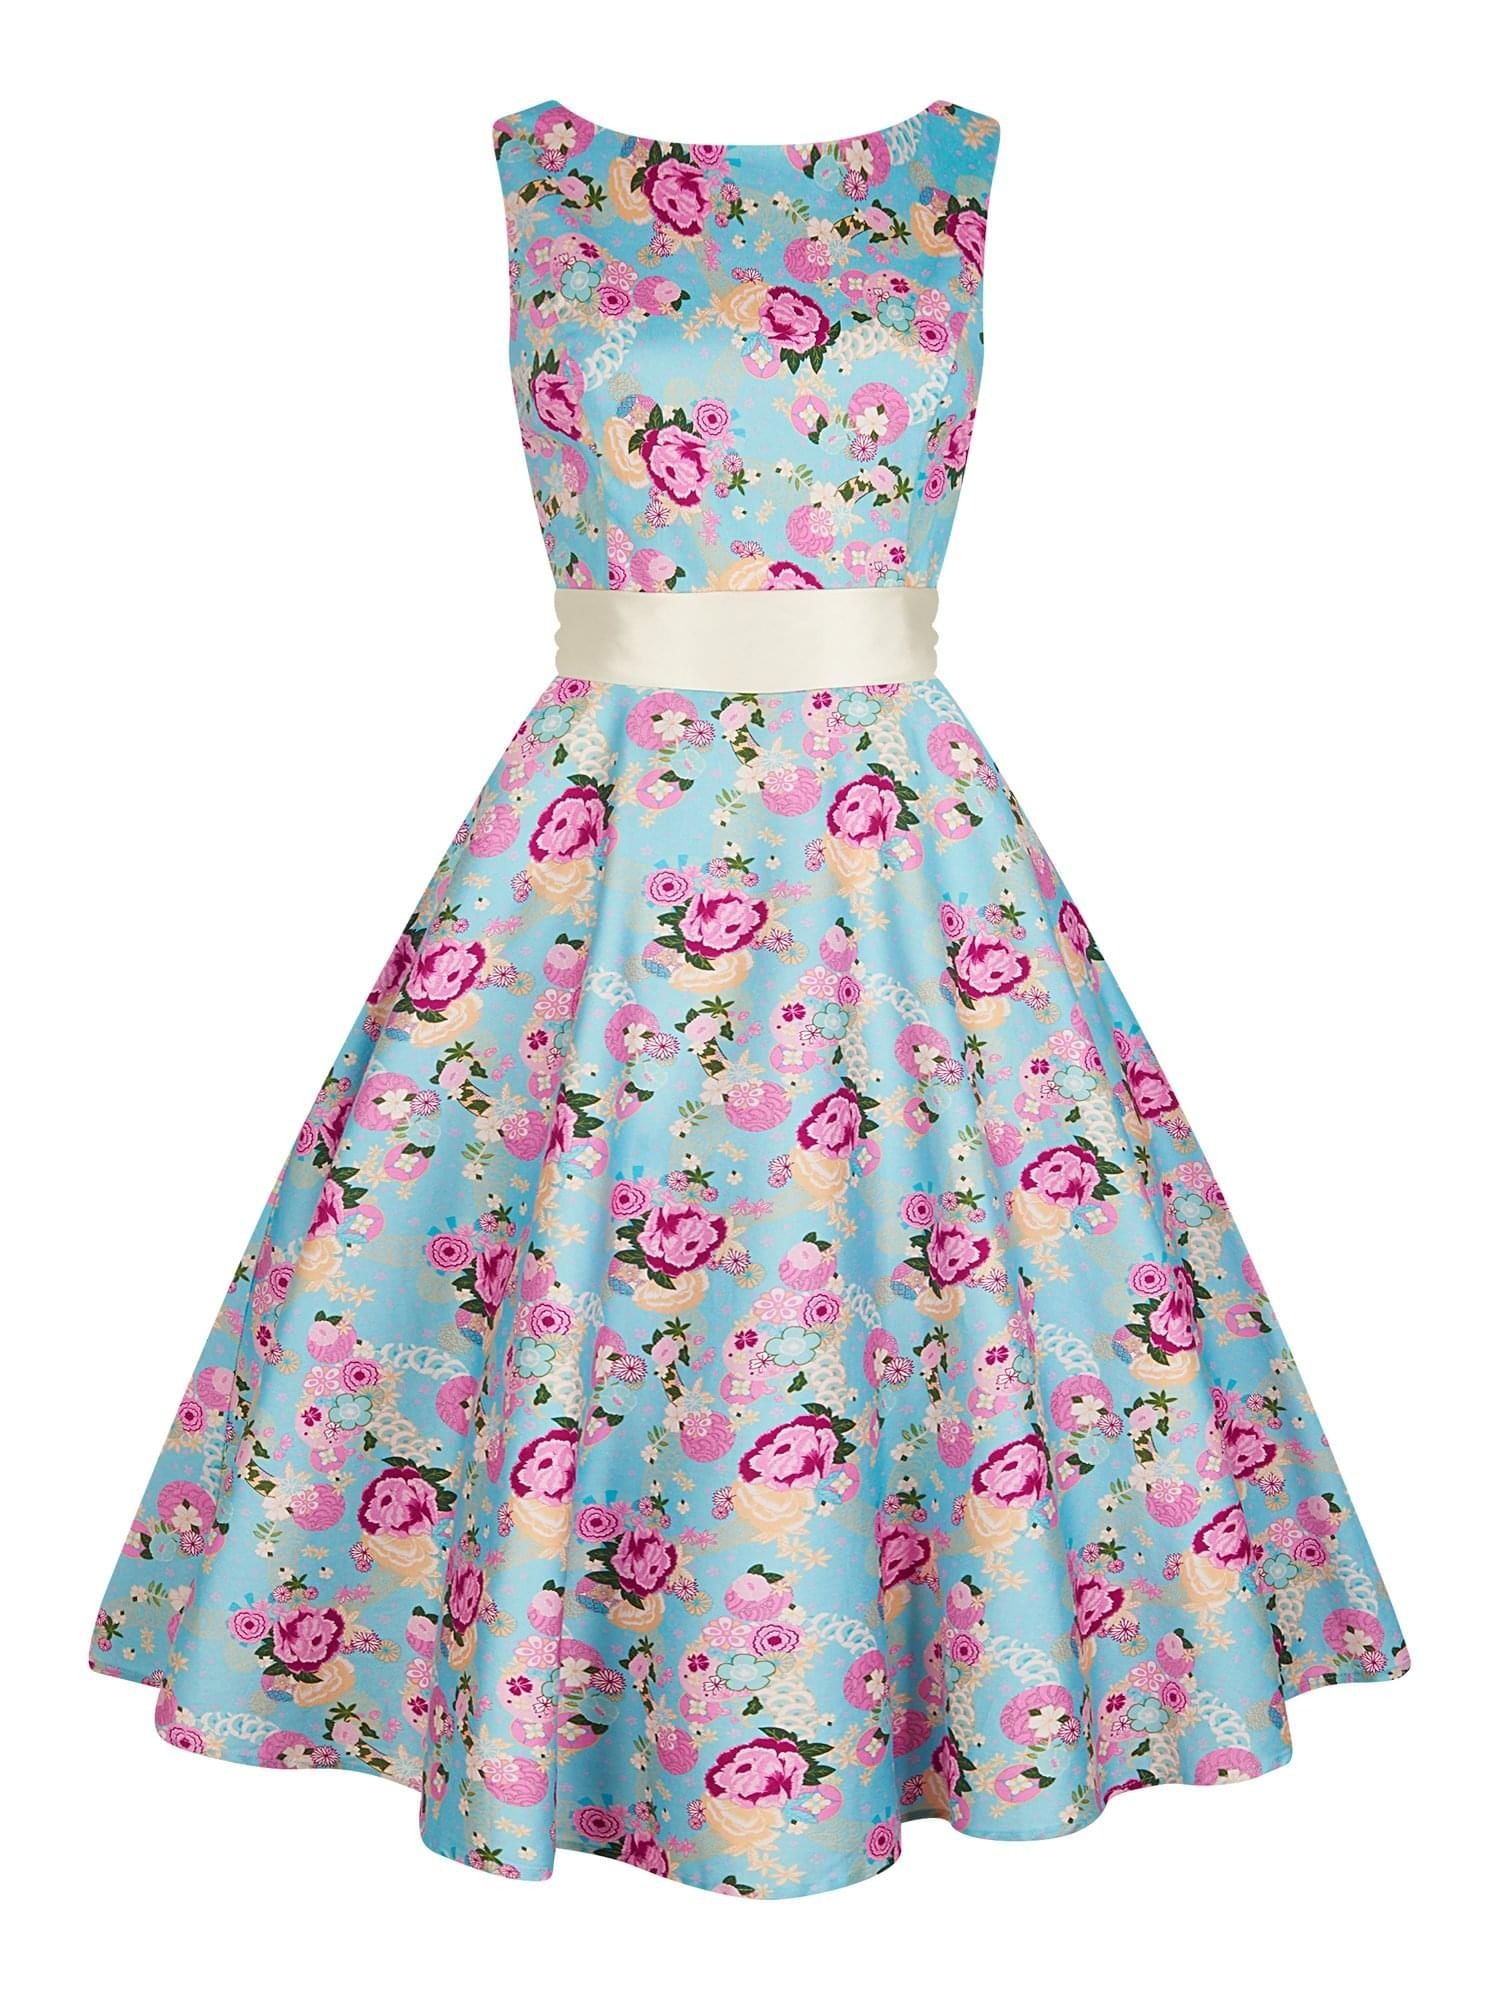 margaret-peony-floral-swing-dress-p8039-625832_zoom